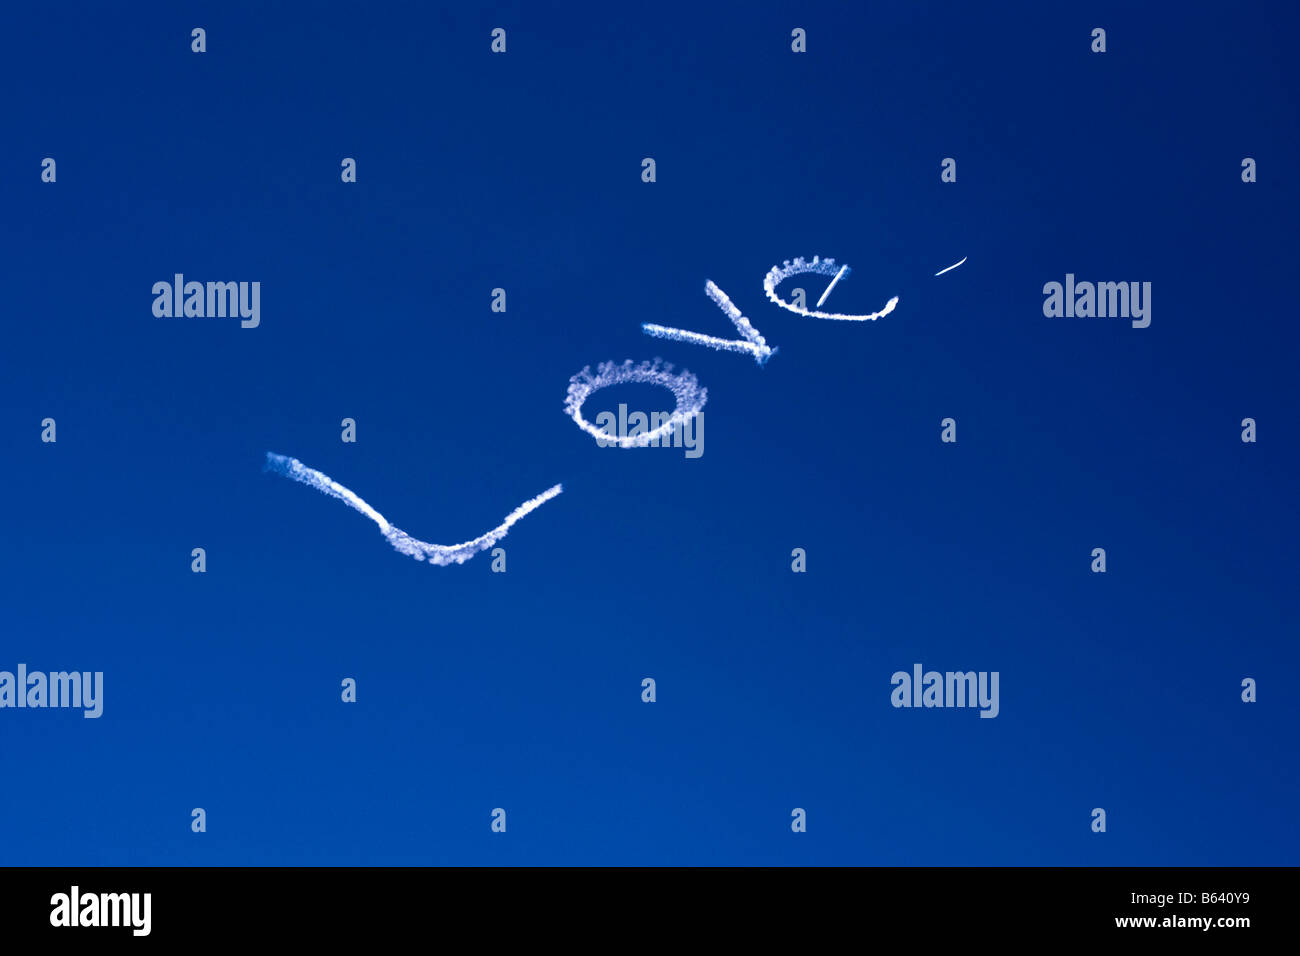 Australia, New South Wales, Sydney. 'Love' sign in air, made by airplane. - Stock Image